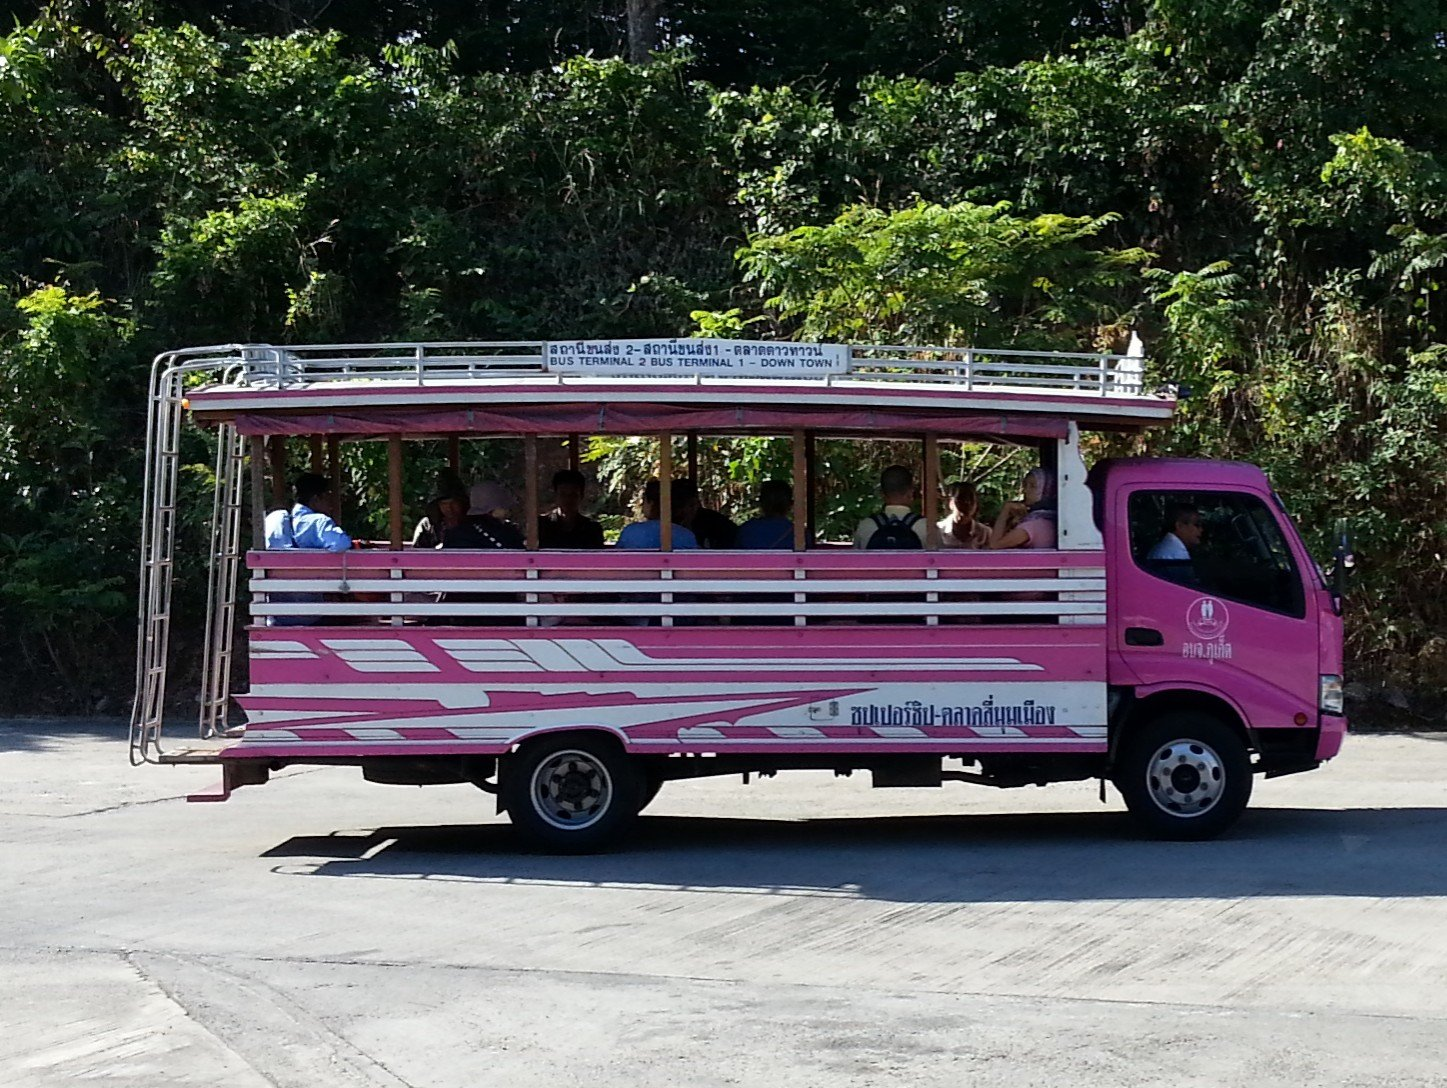 Shared taxi from Phuket Bus Terminal 2 to Phuket Bus Terminal 1